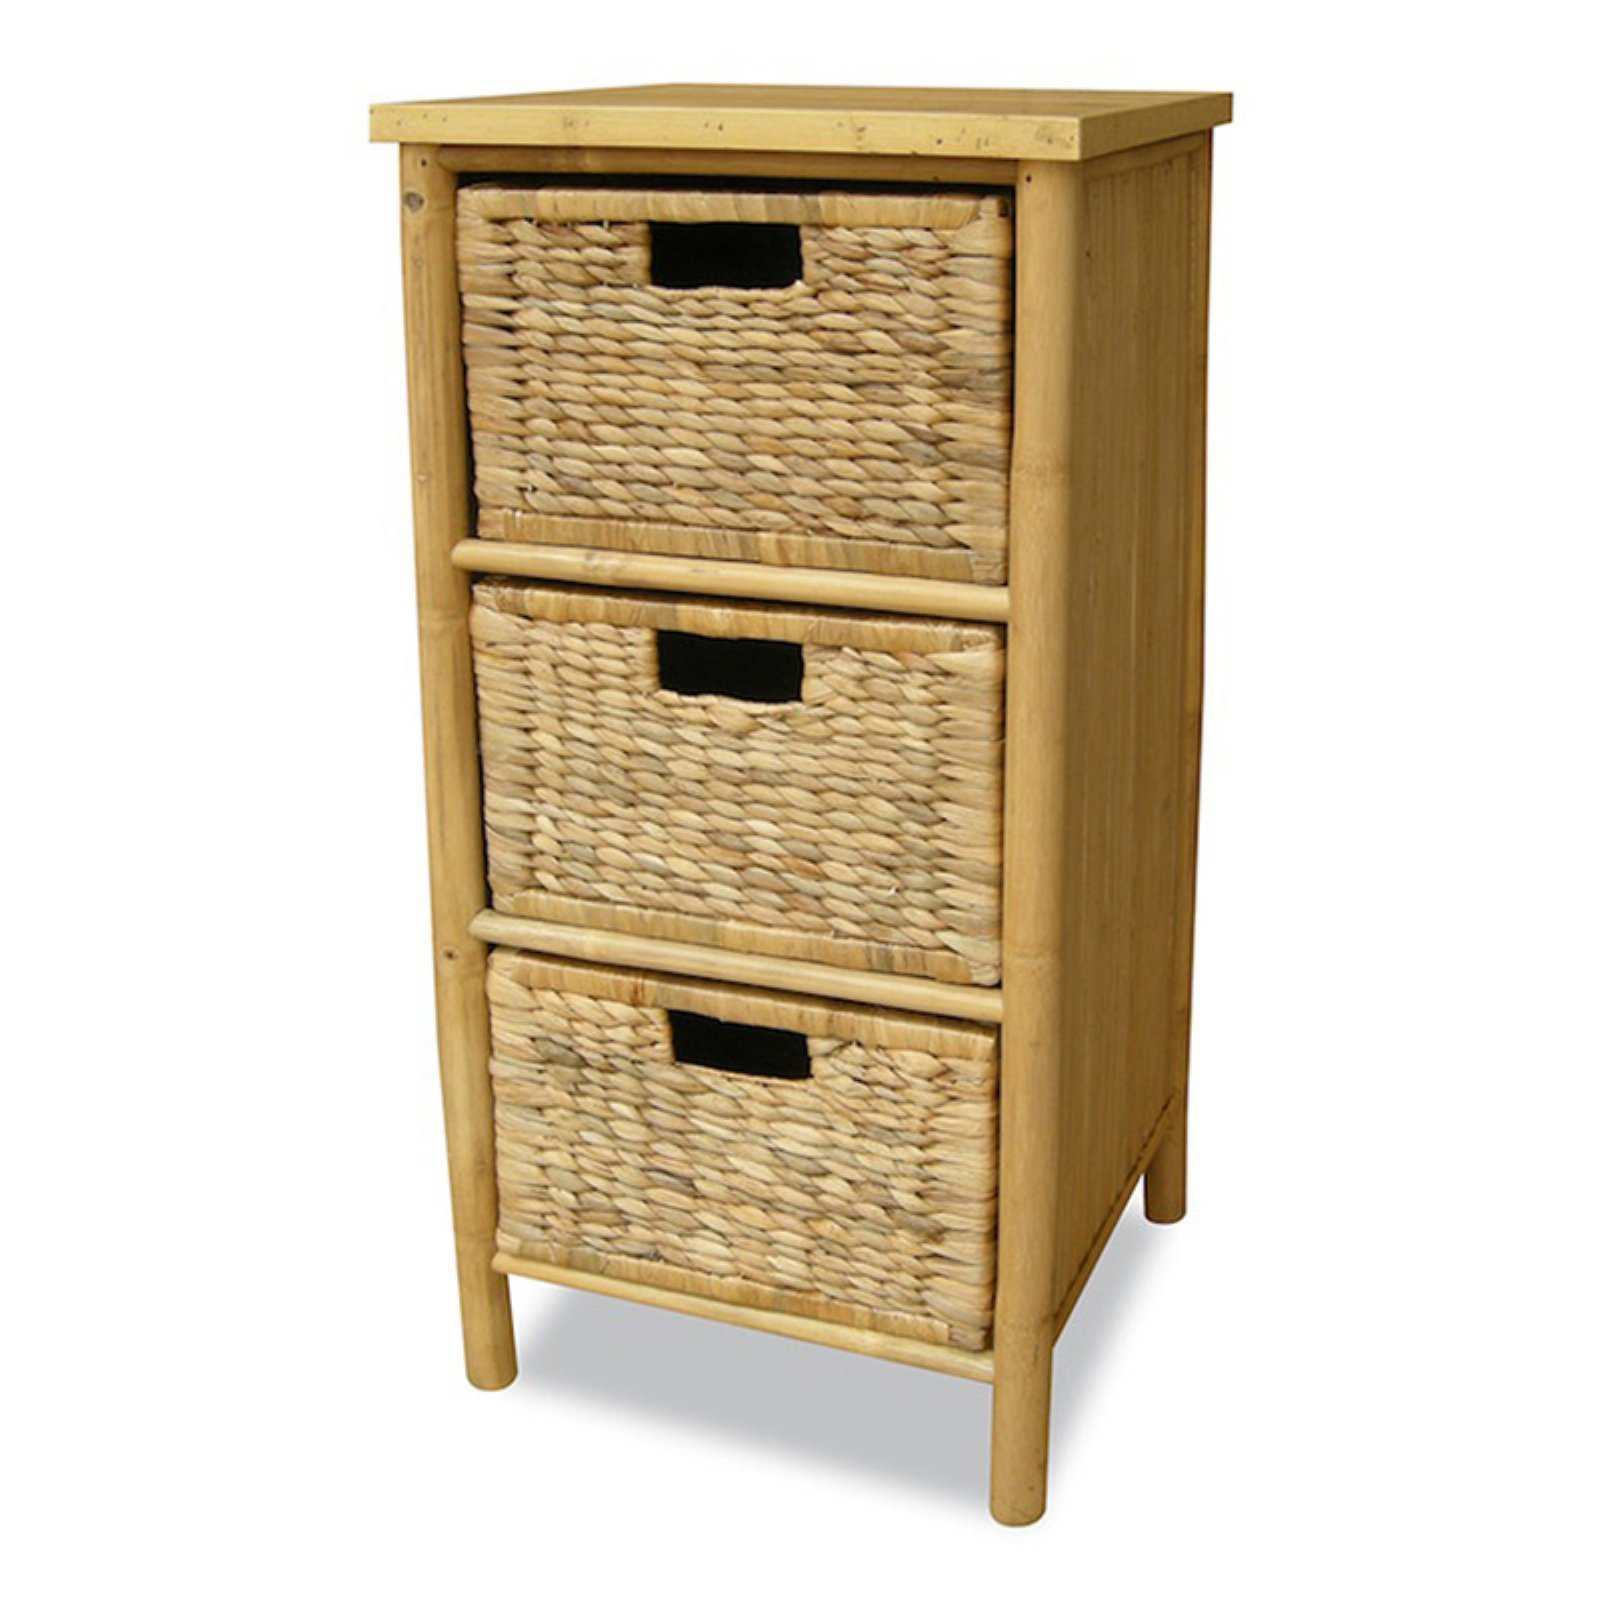 Heather Ann Creations Naia 3 Drawer Bamboo Storage Cabinet